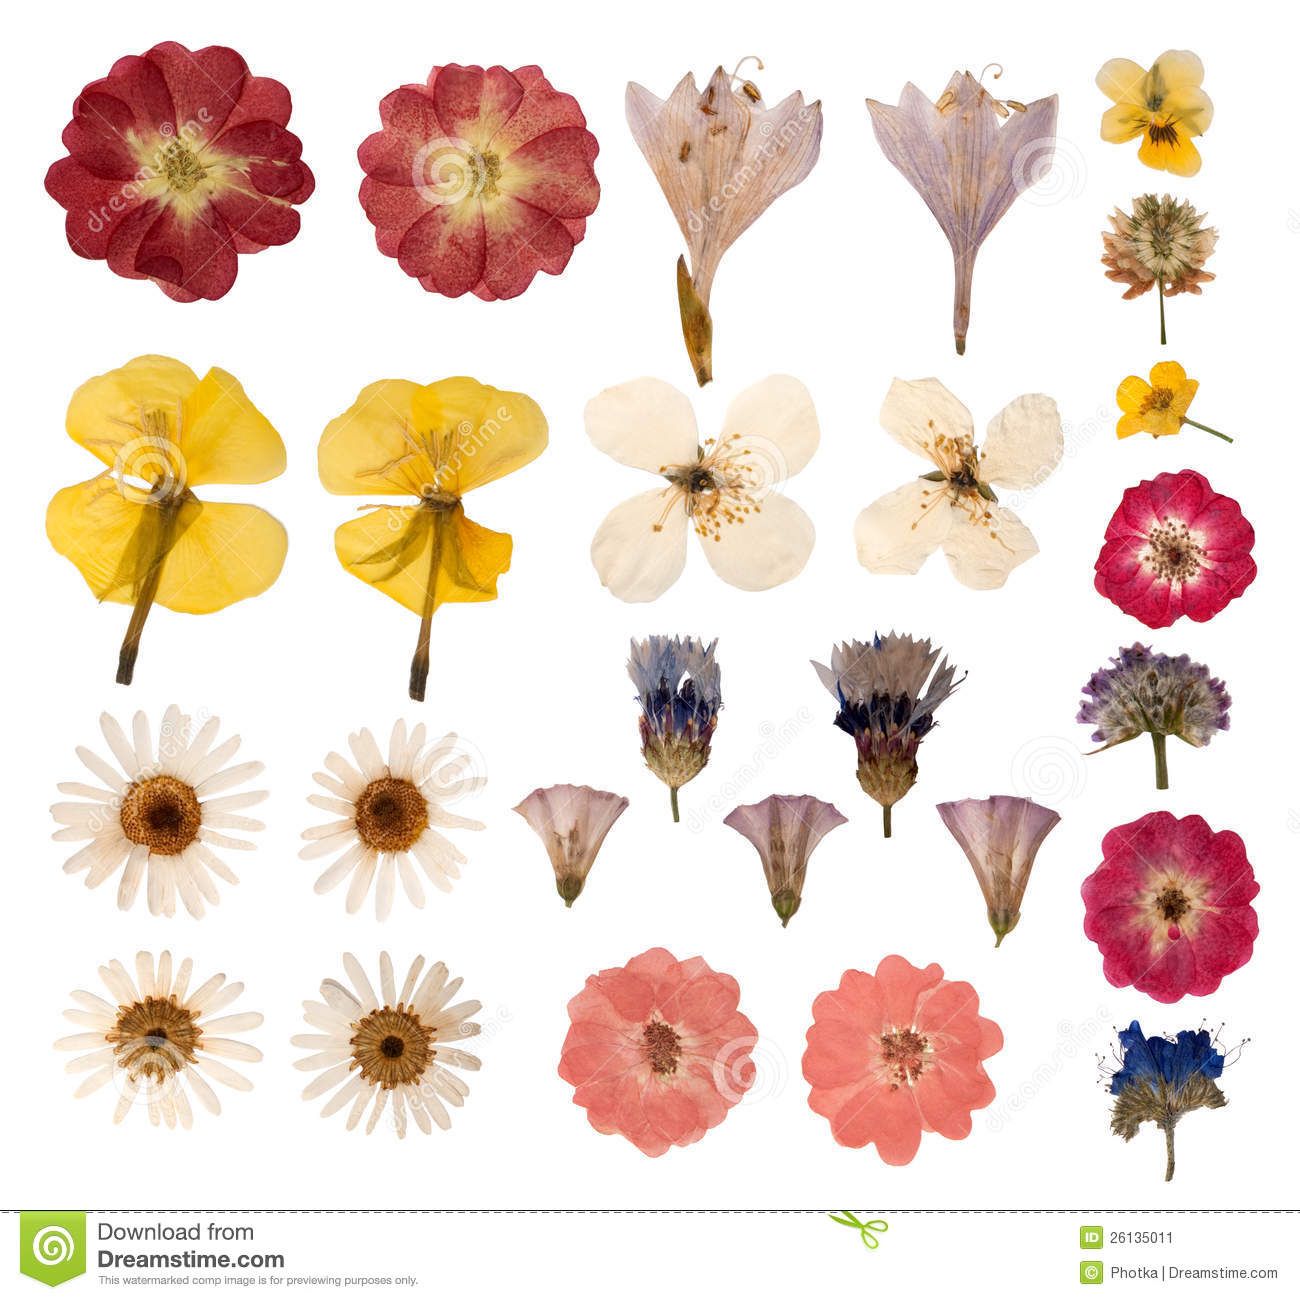 Pressed Flowers Stock Image - Image: 26135011